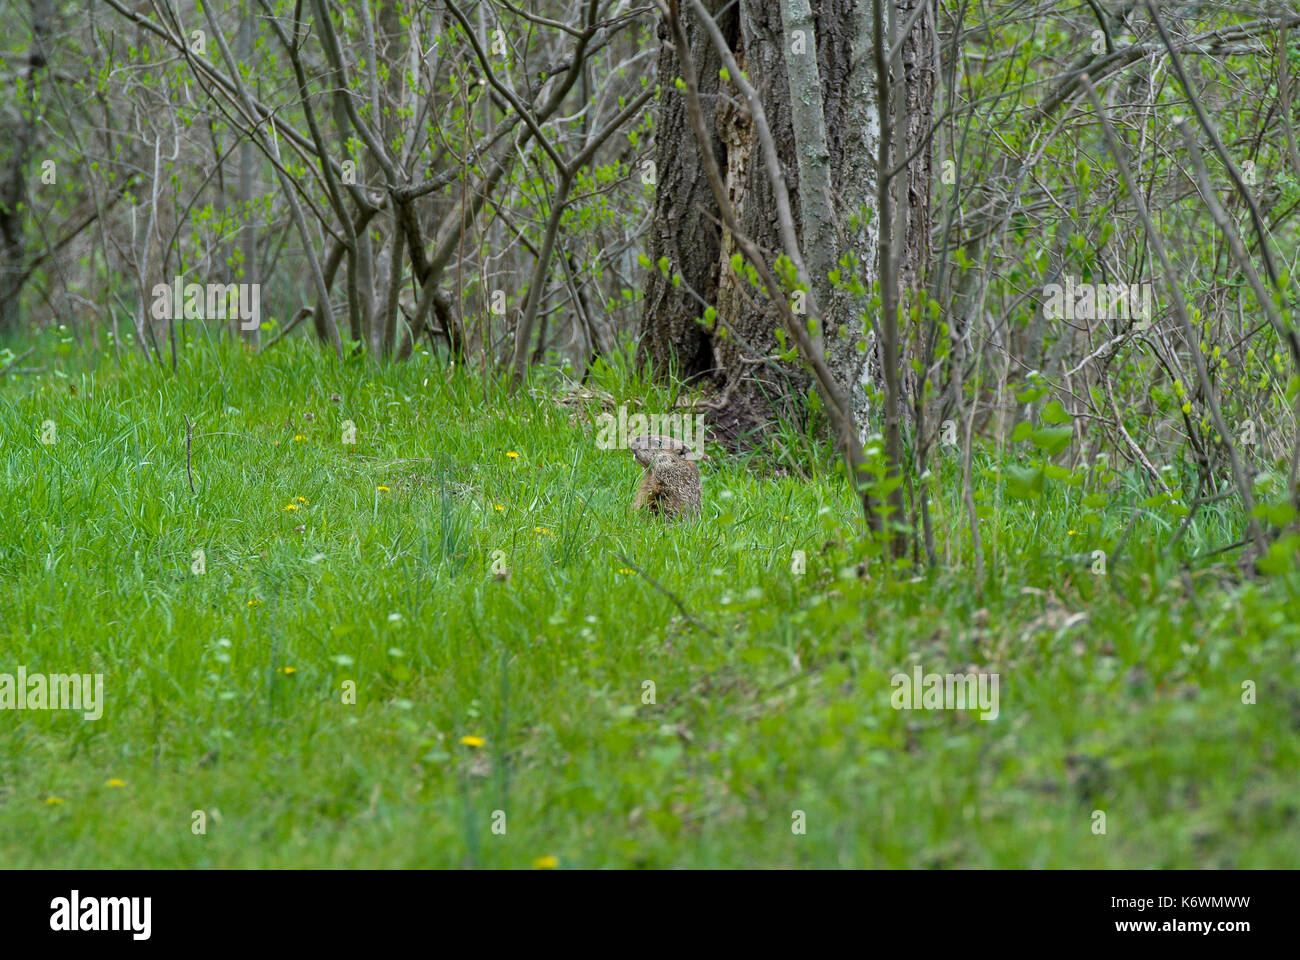 GROUNDHOG (MARMOTA MONAX) PEEKING OUT OF HOLE - Stock Image